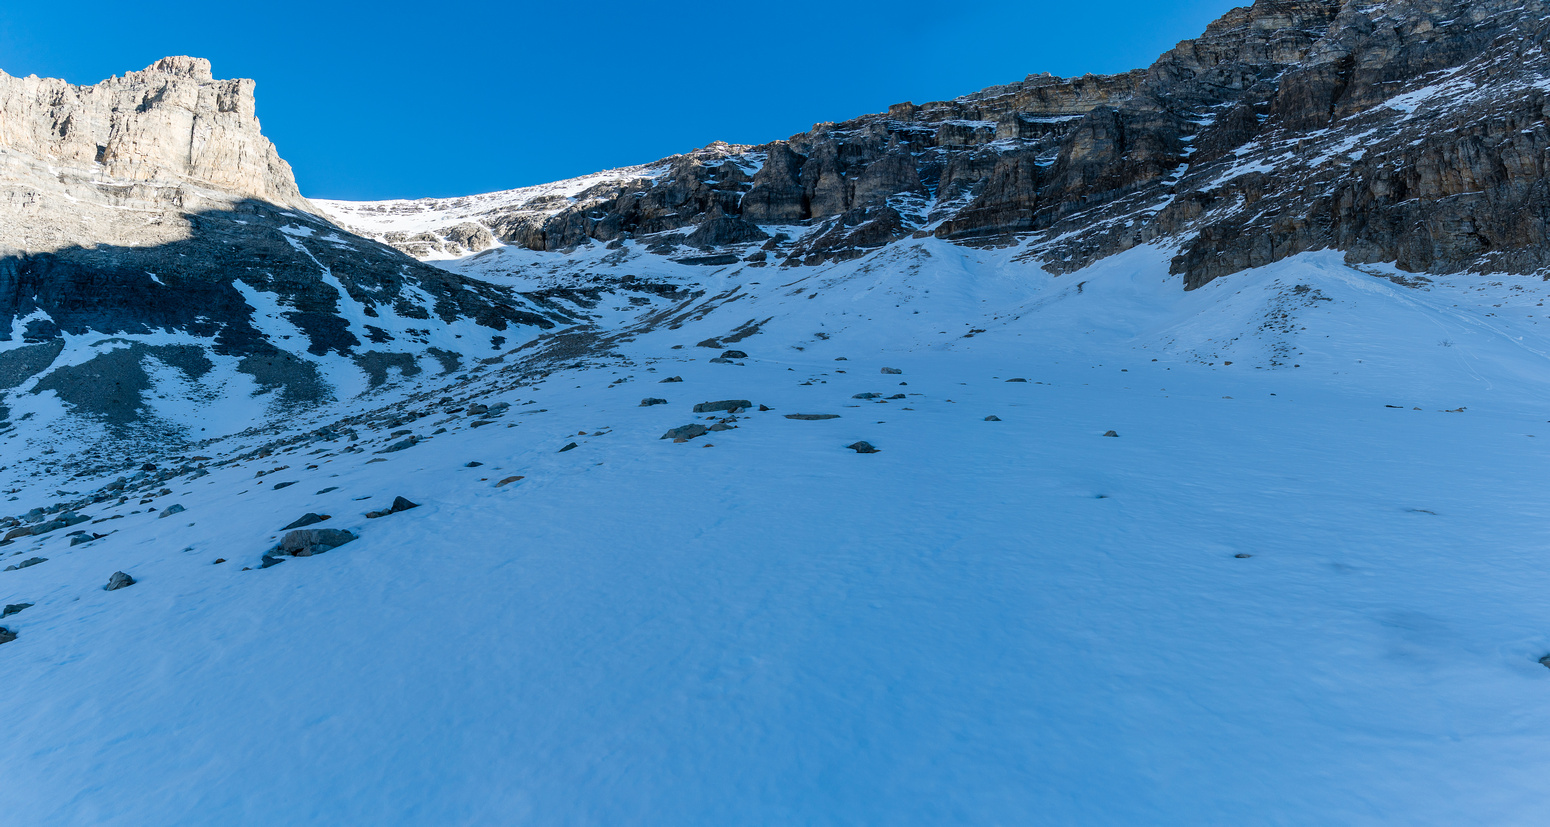 The snow becomes more permanent and our foreshortened route to the summit appears left of center.